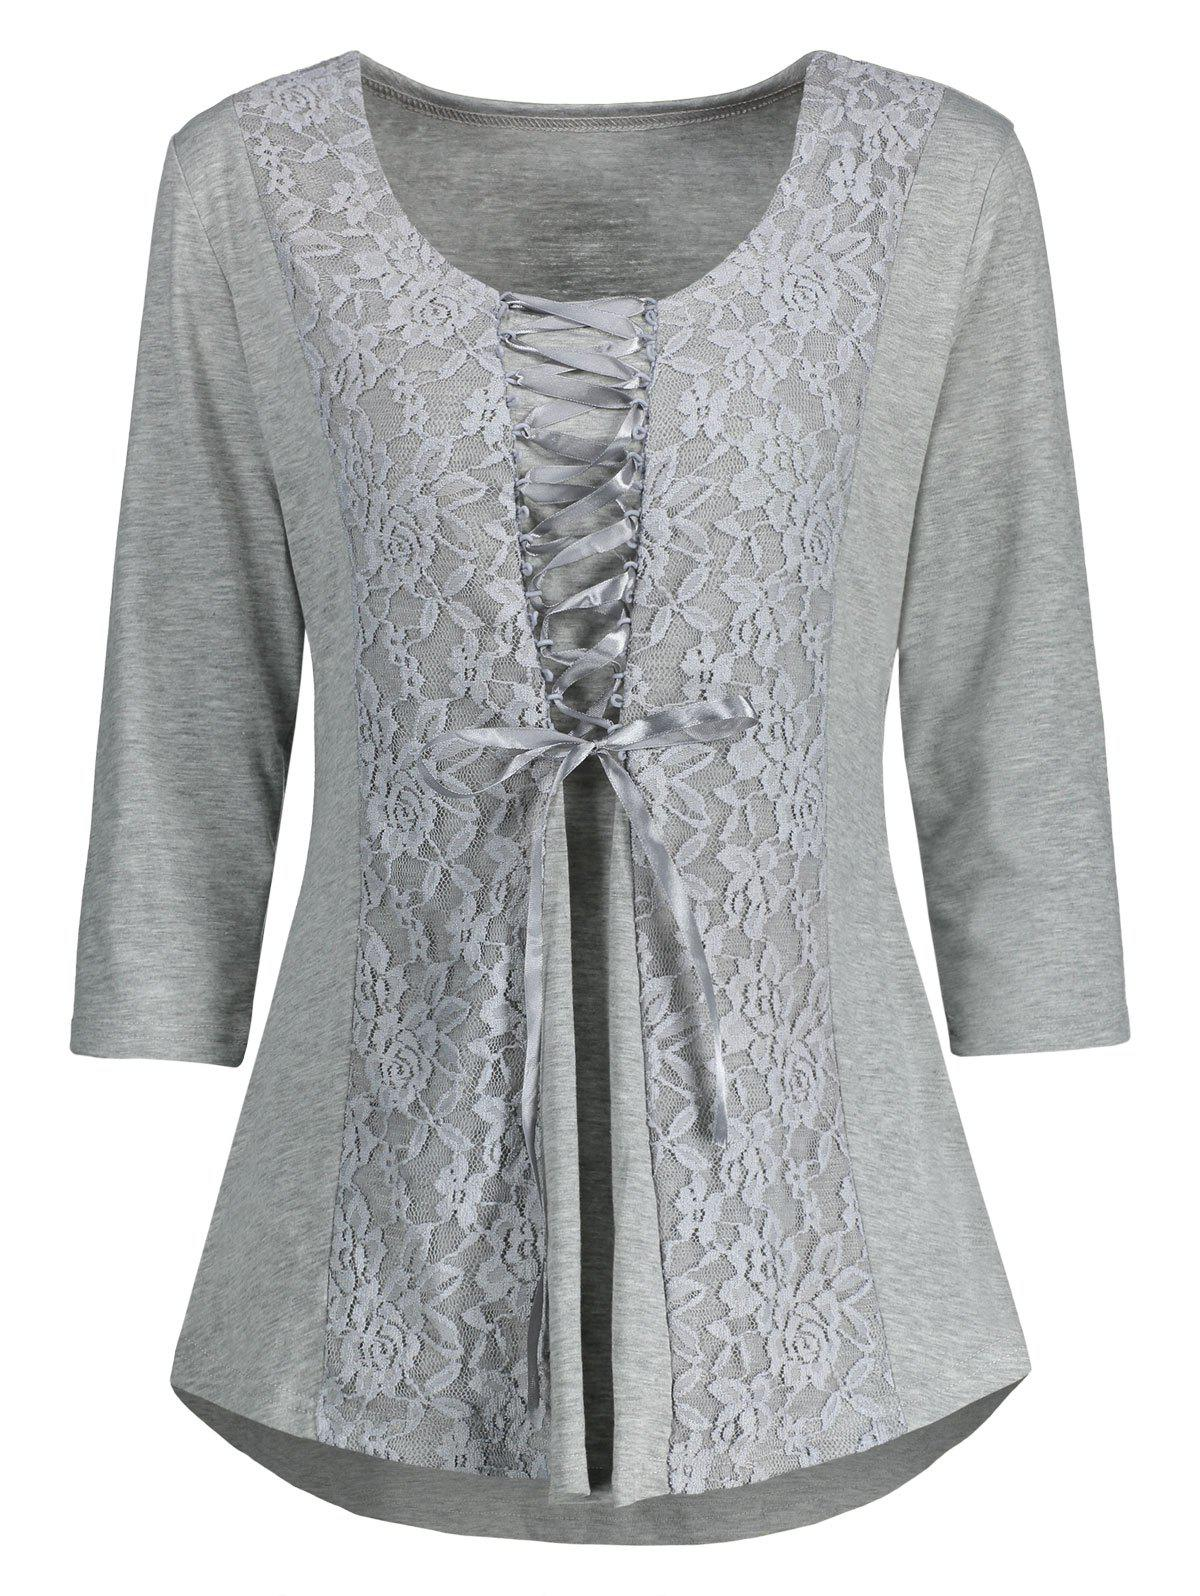 Lace Panel Lace Up Top - GRAY XL